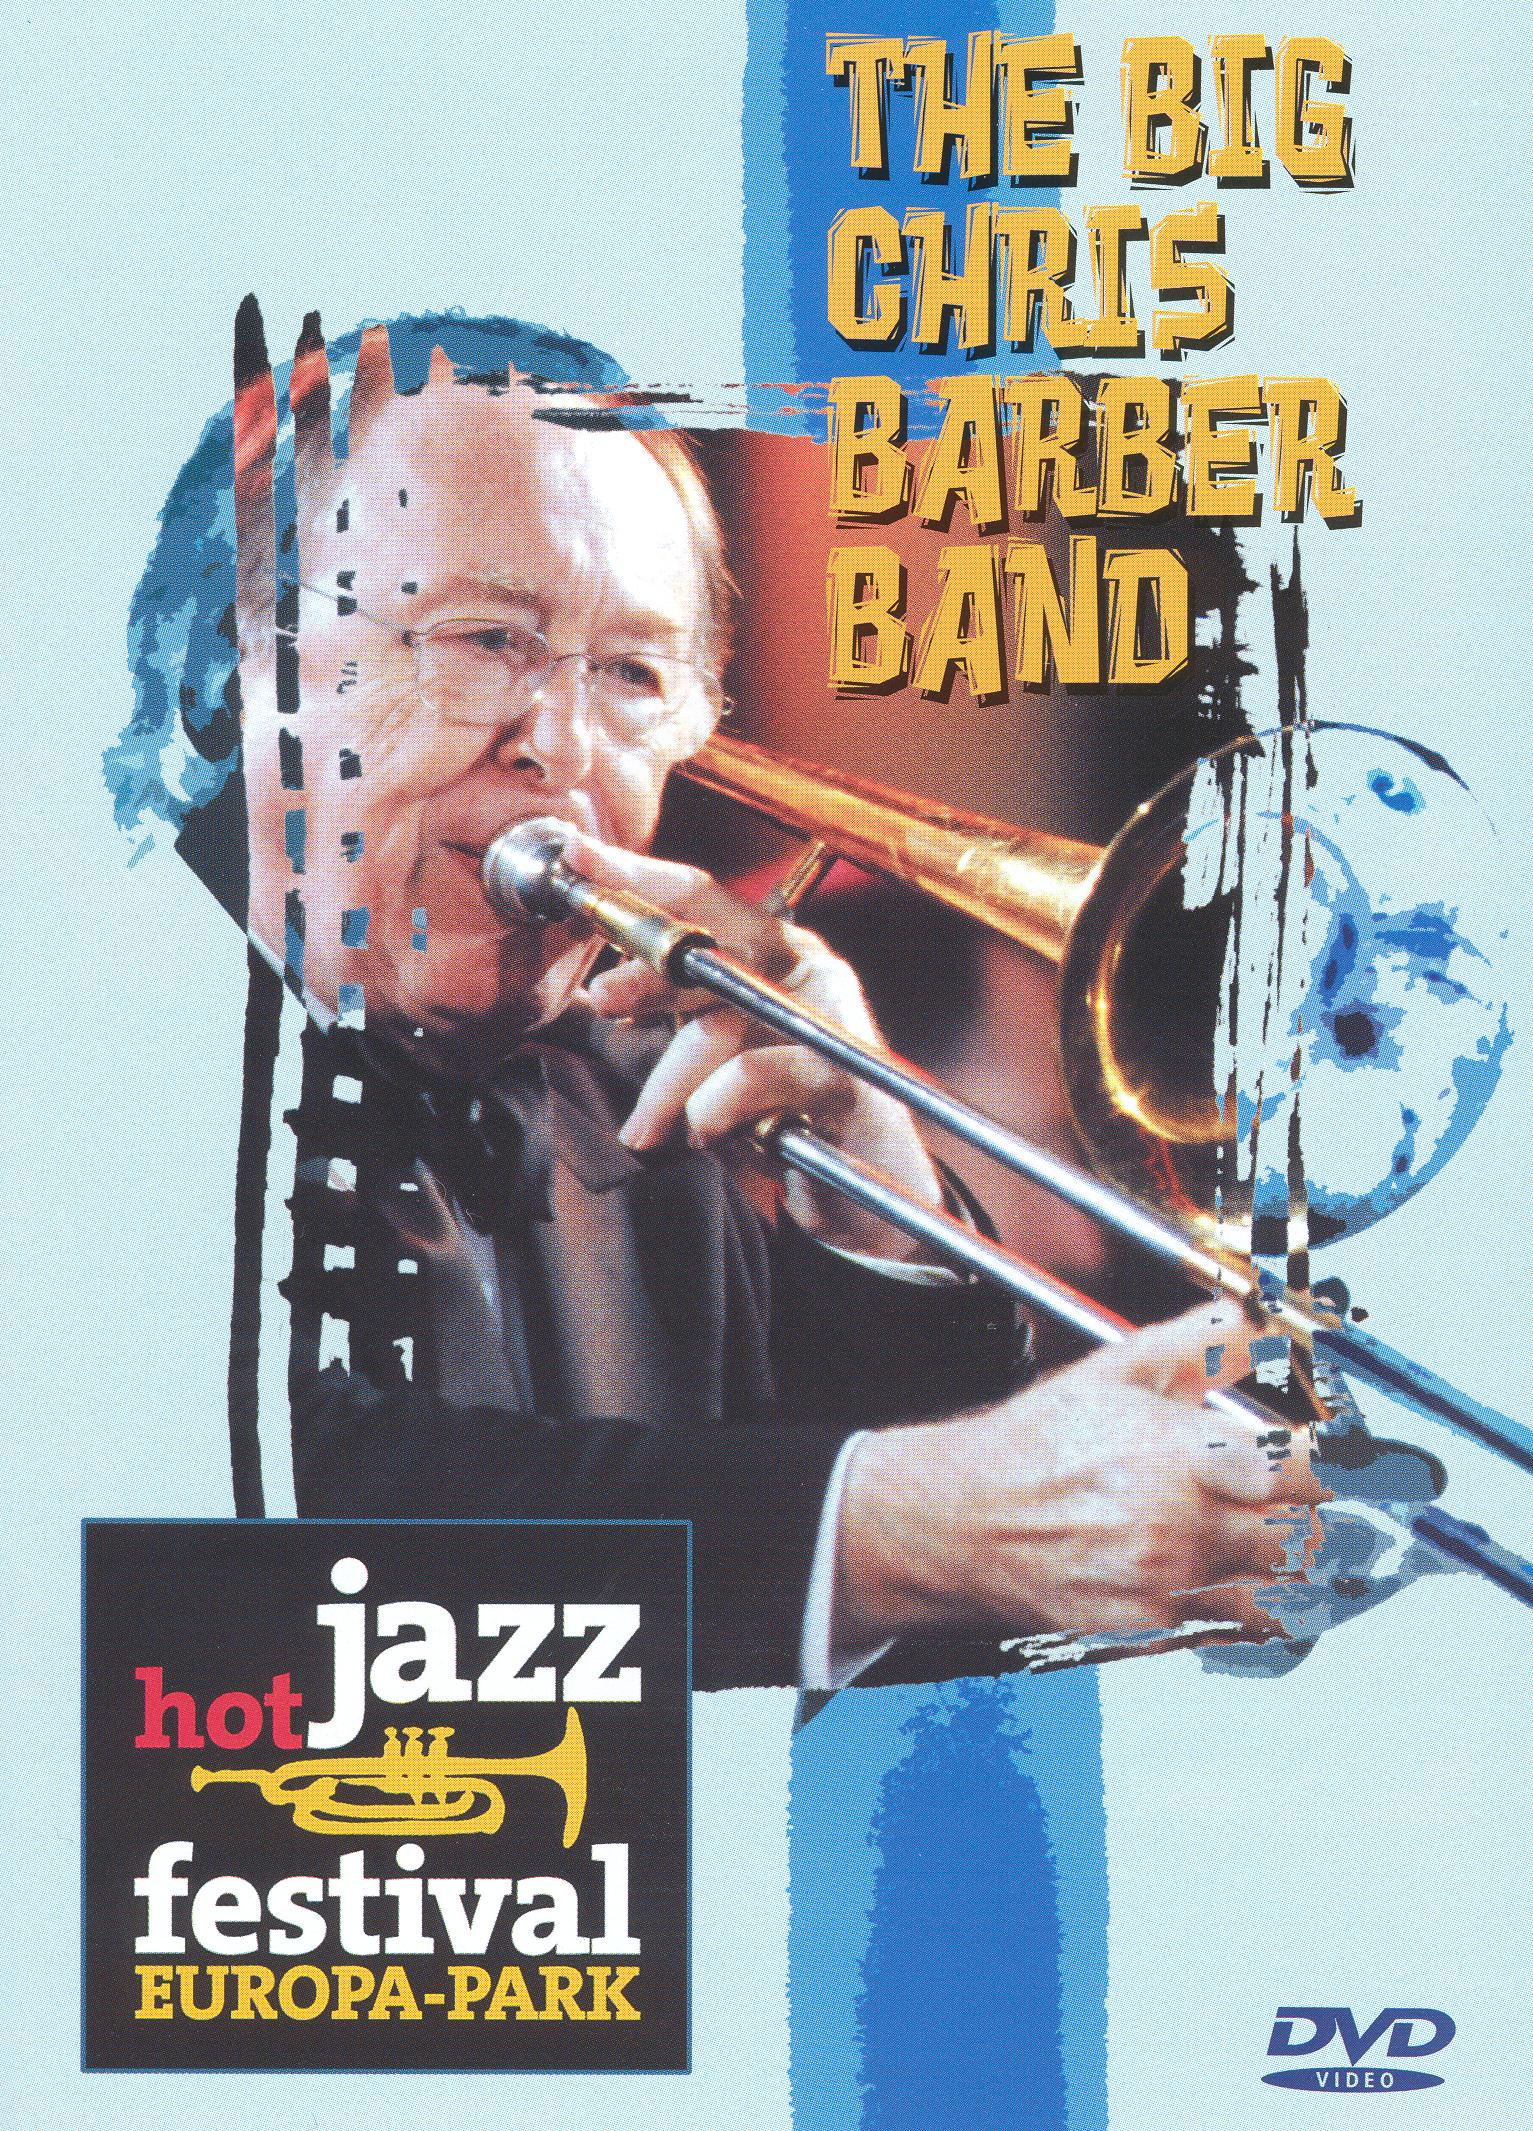 The Big Chris Barber Band: Hot Jazz Festival - Europa-Park